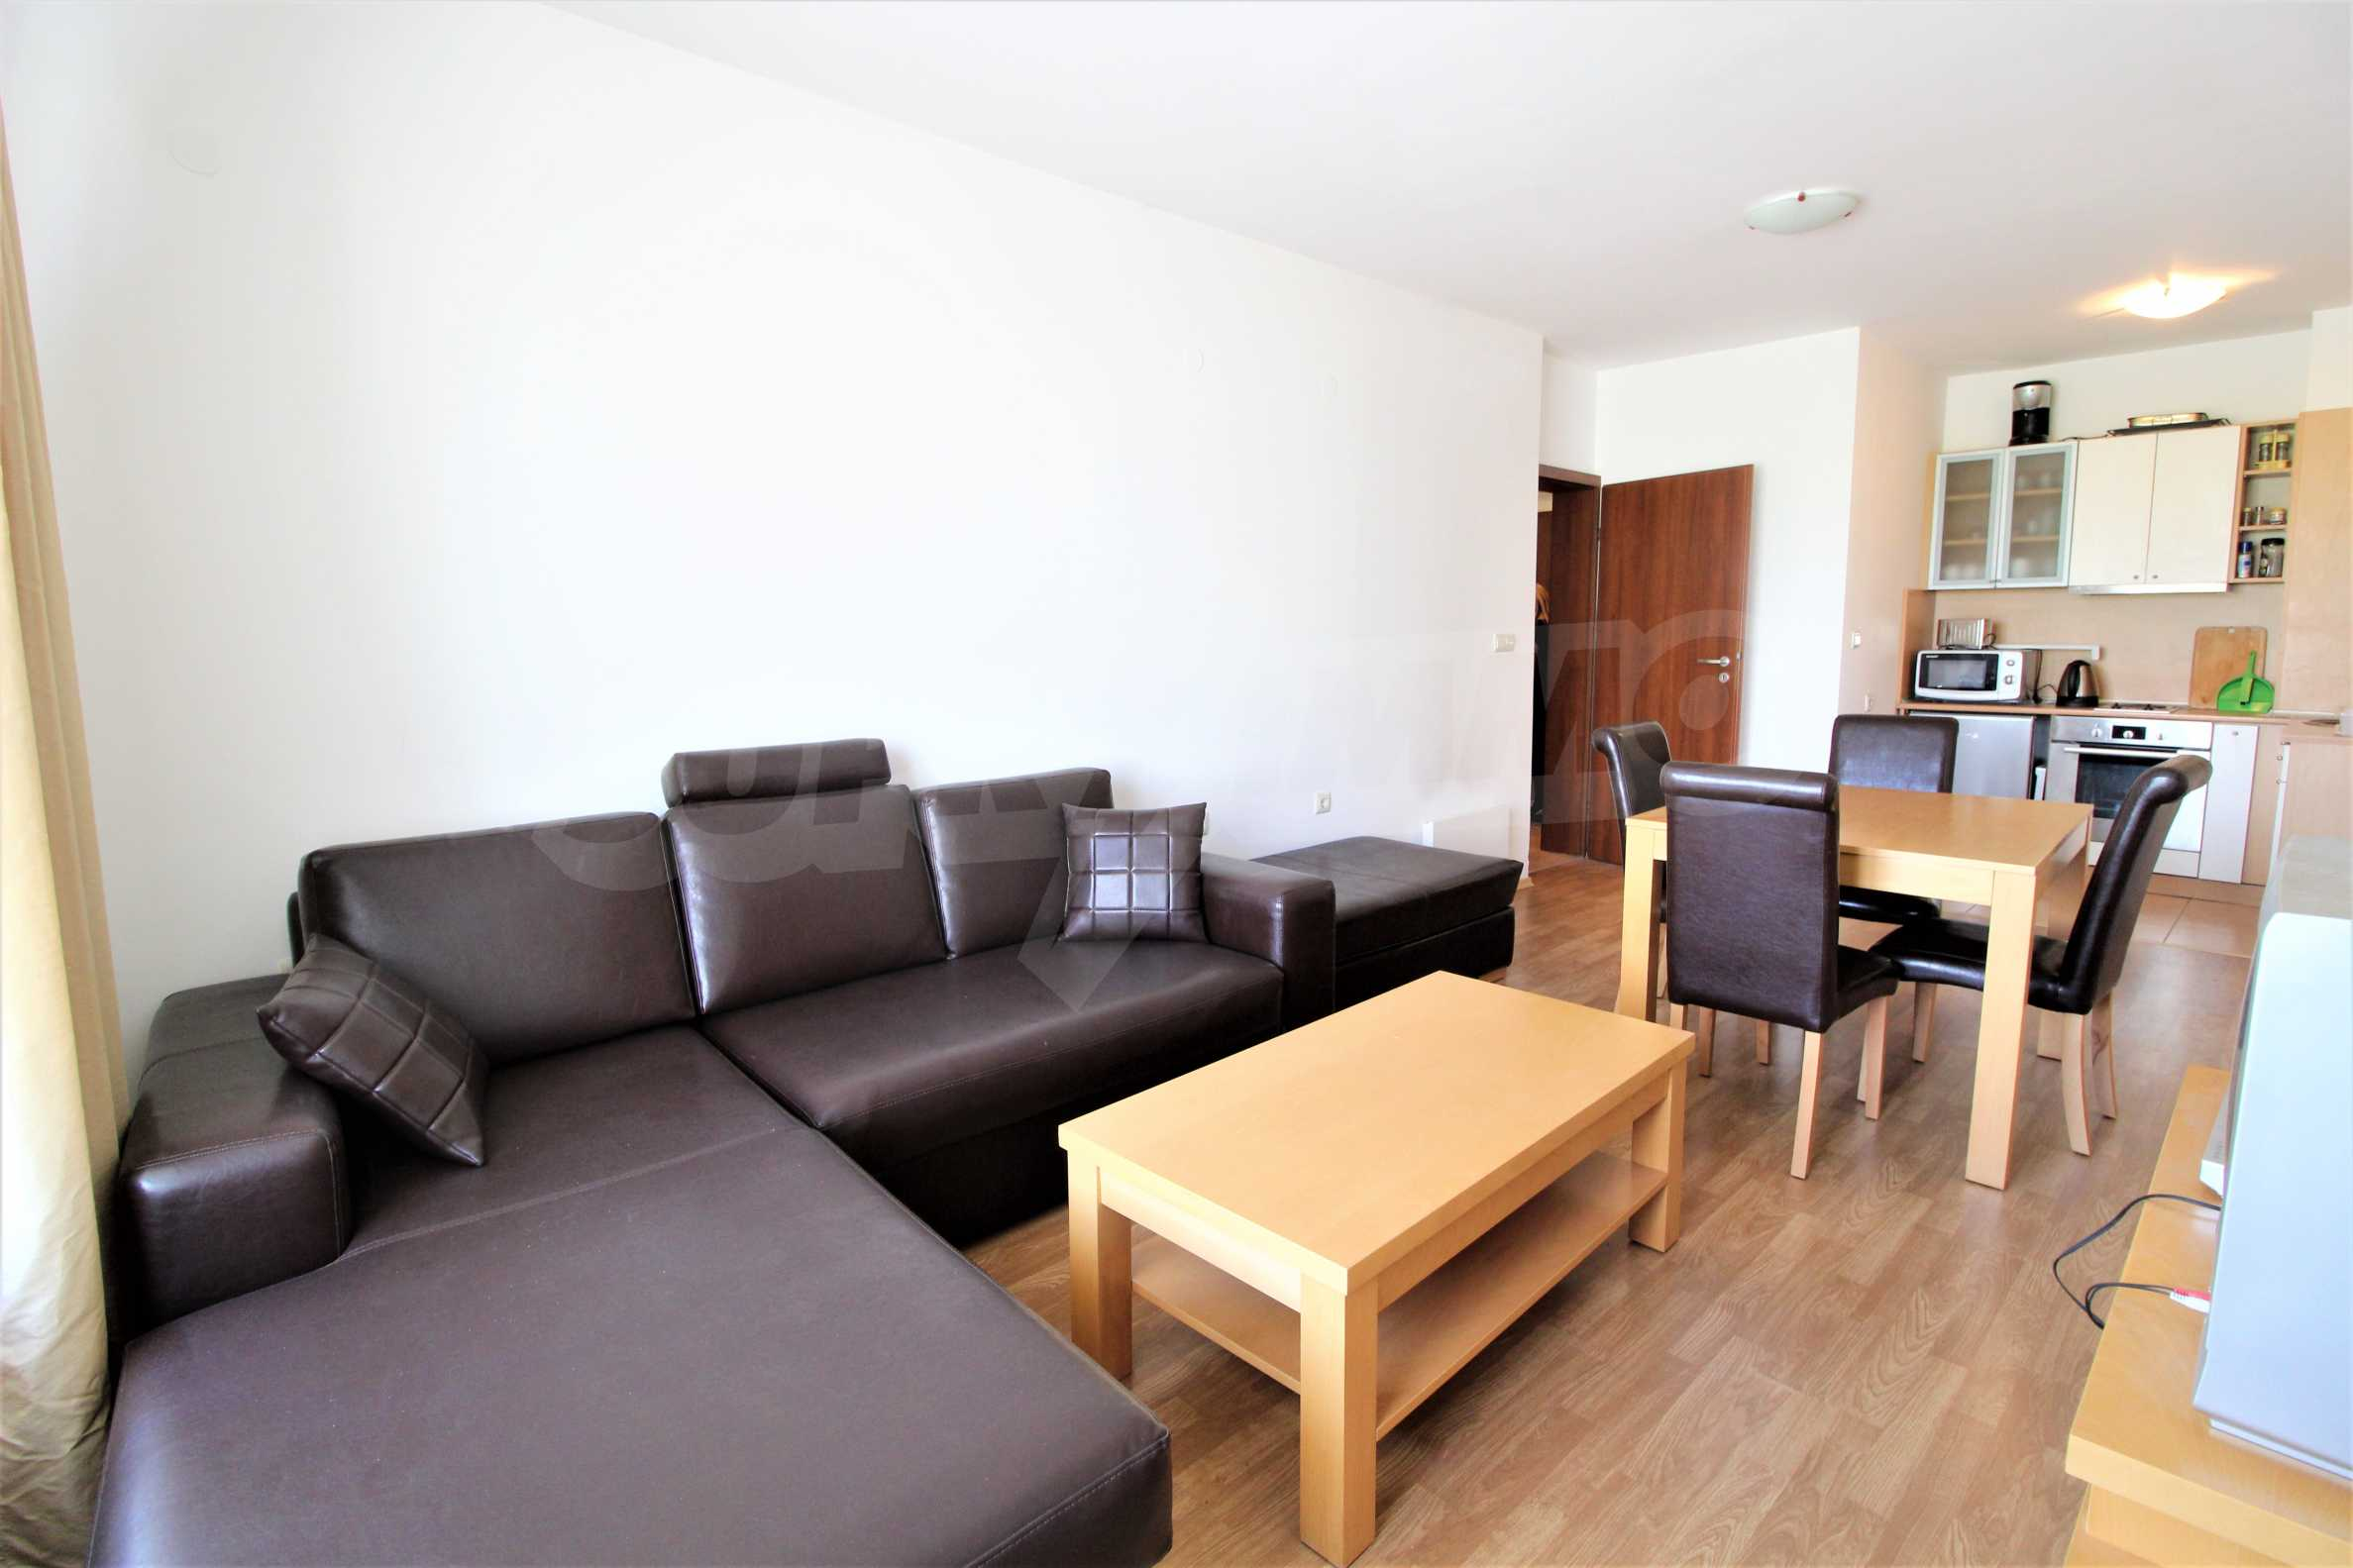 Furnished two-bedroom apartment located in Top Lodge complex, just meters from the ski lift in Bansko